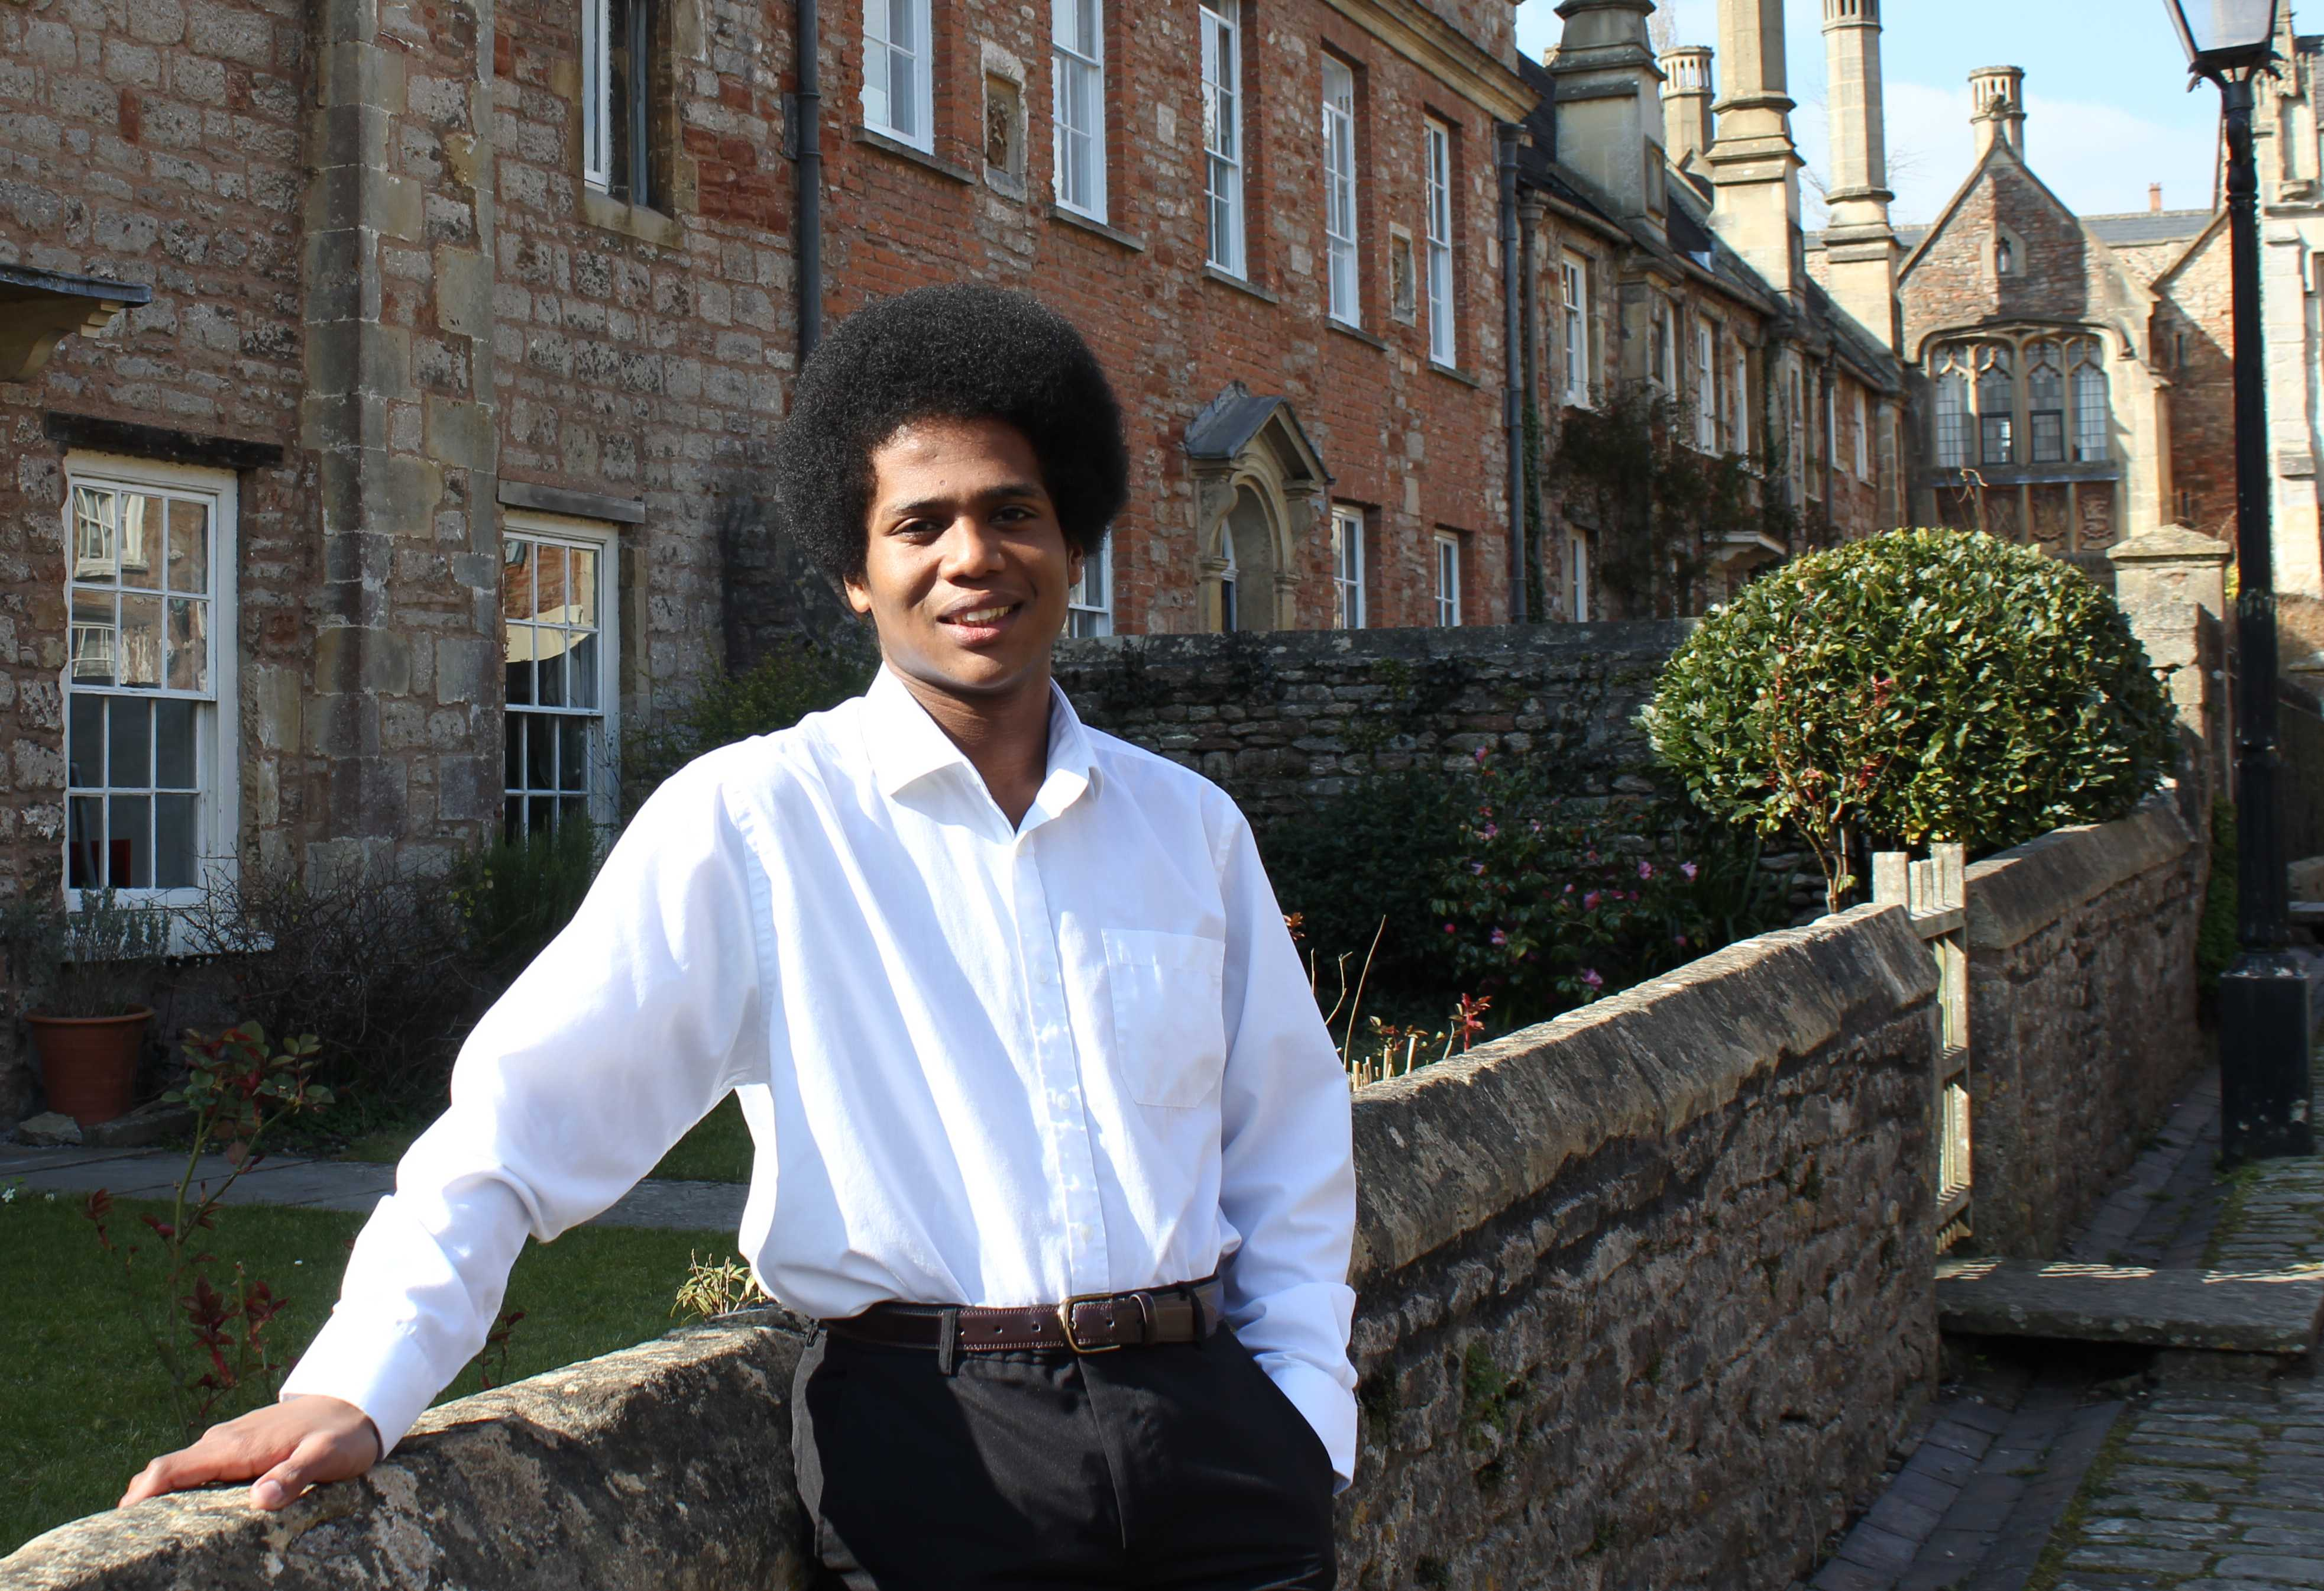 Adam Heron - Pianist, Composer and Conductor